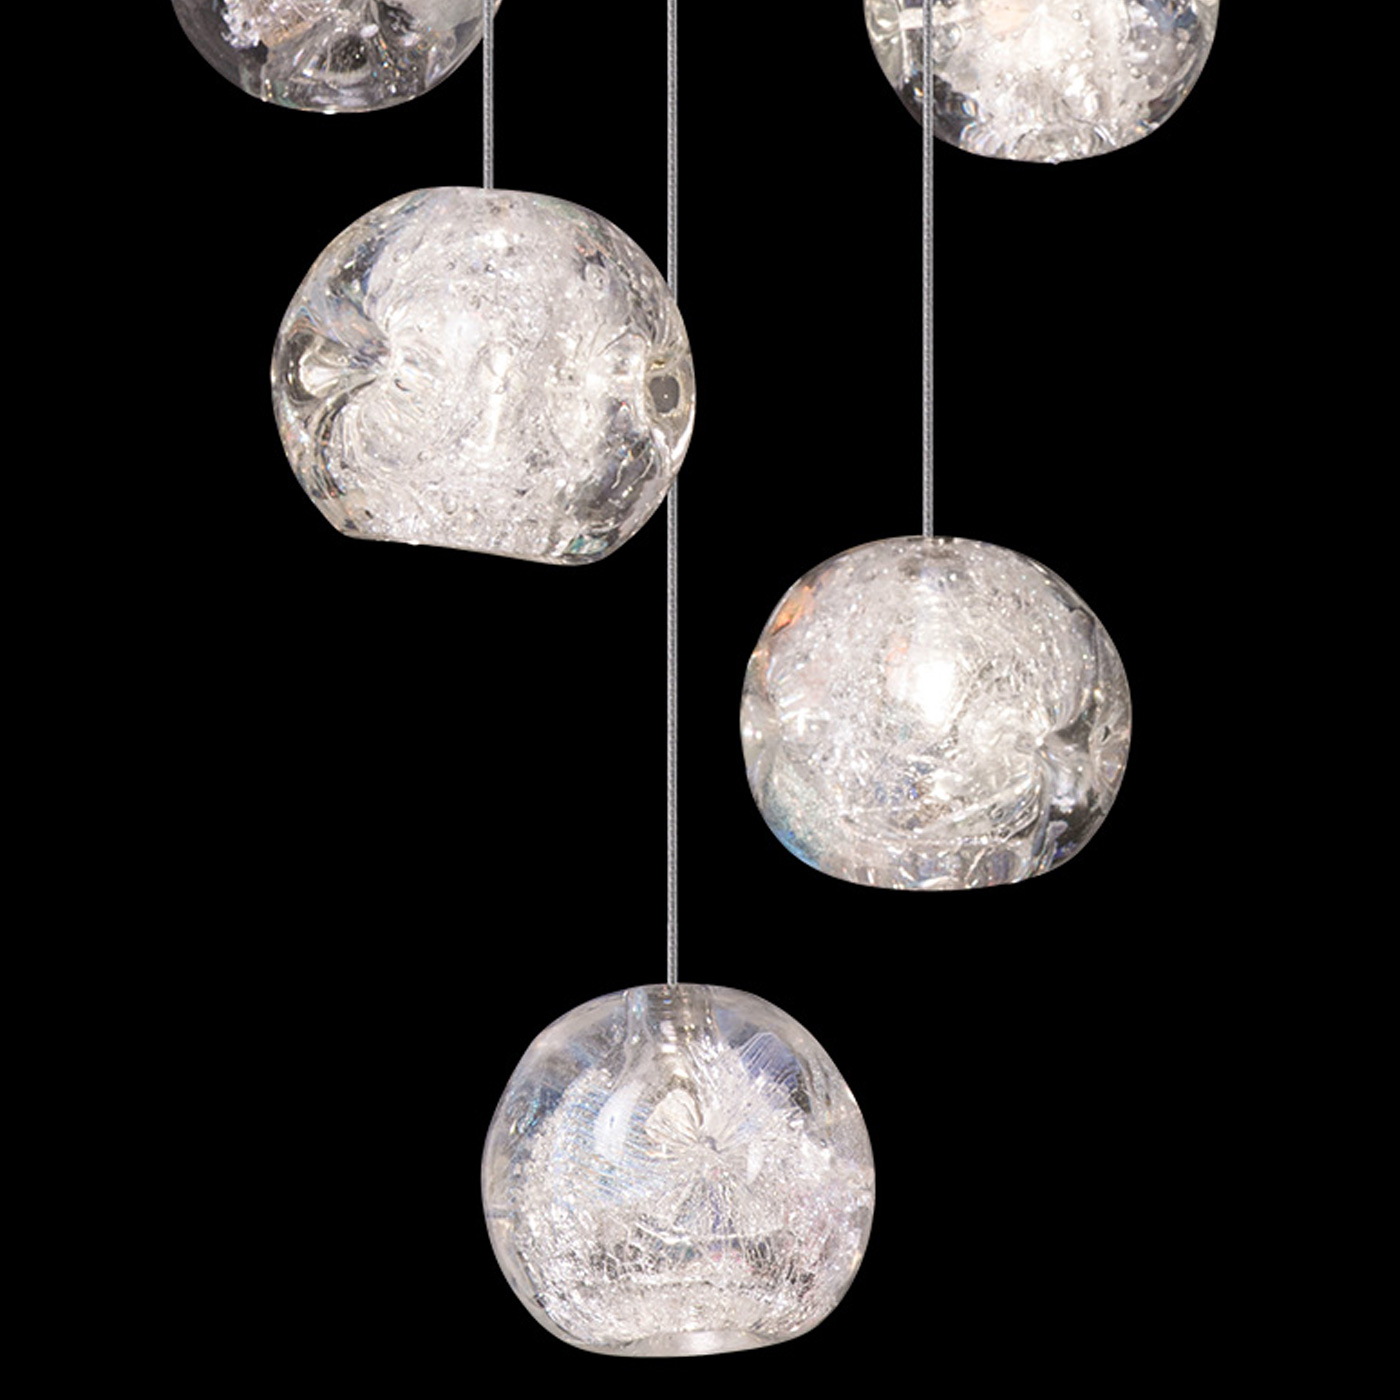 NATURAL INSPIRATIONS- FINE ART HANDCRAFTED LIGHTING